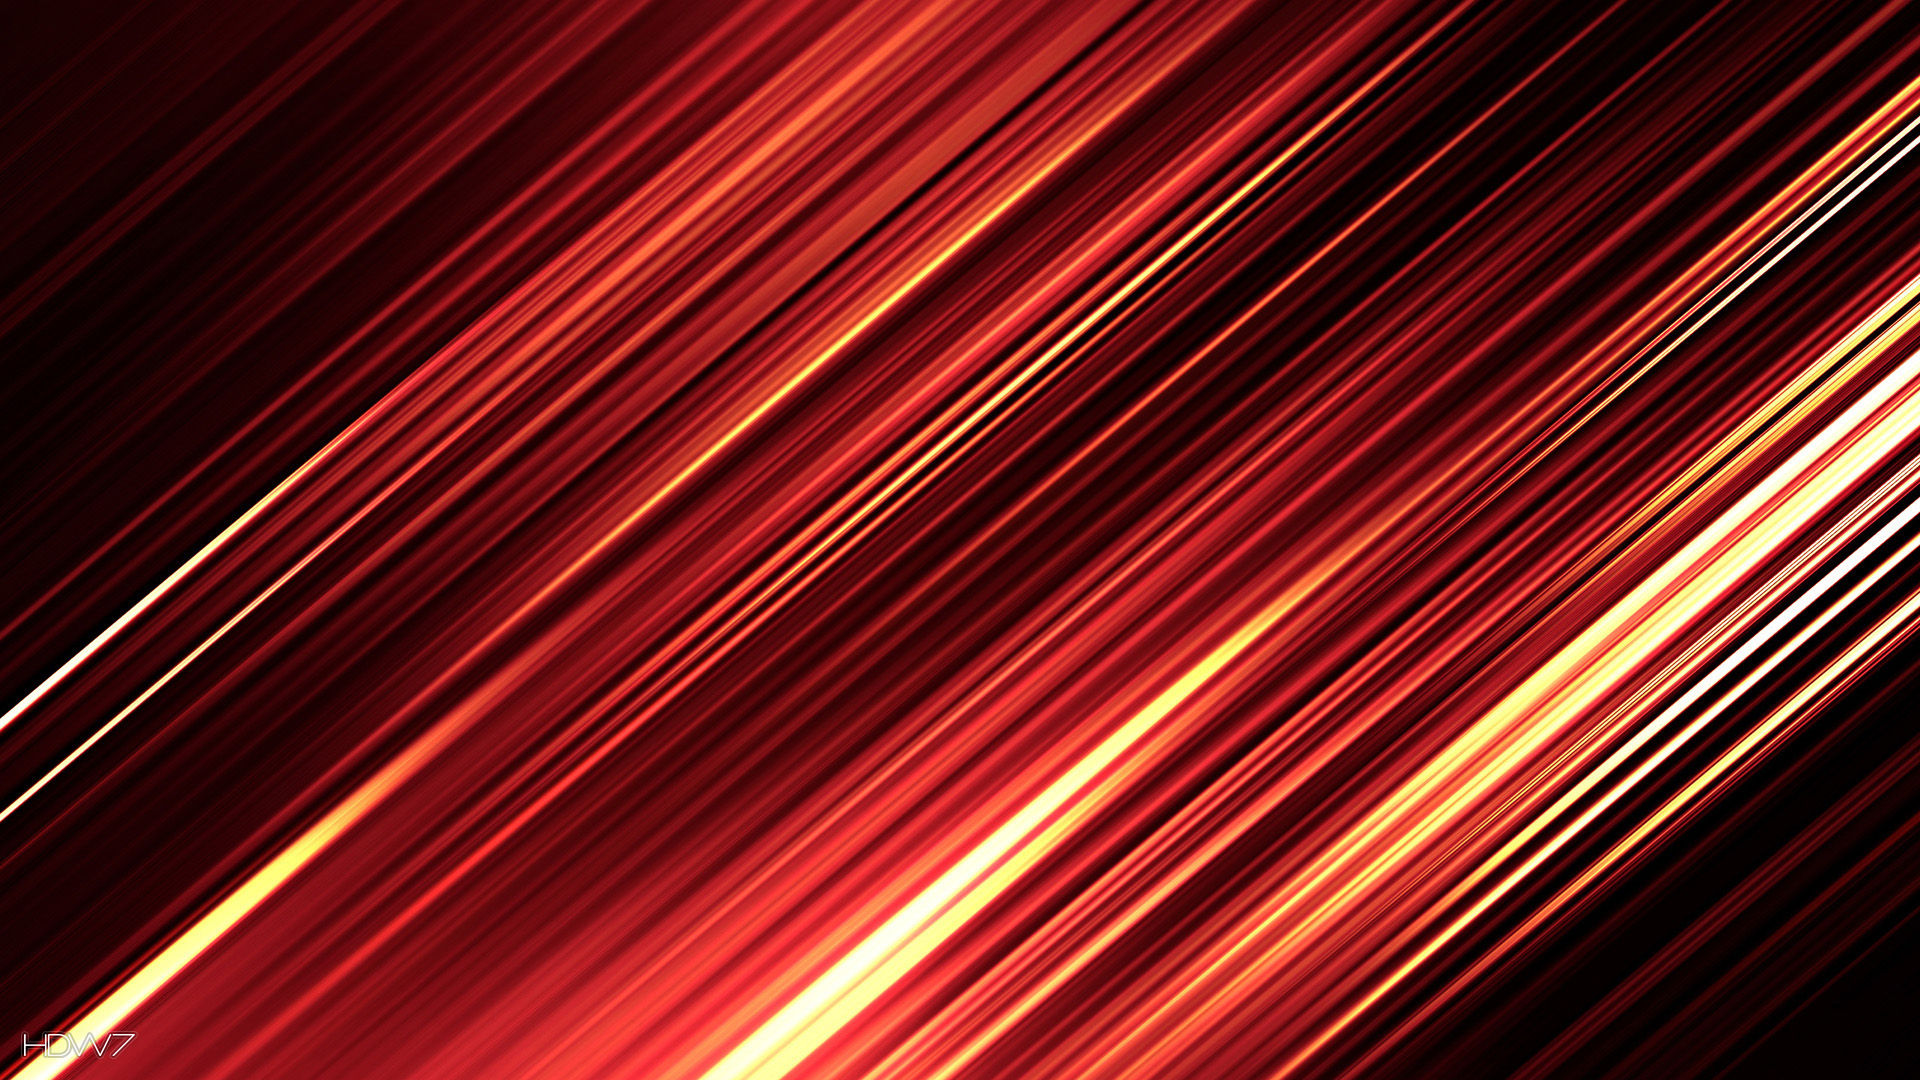 Abstract Metal Texture Wallpaper 1920x1080